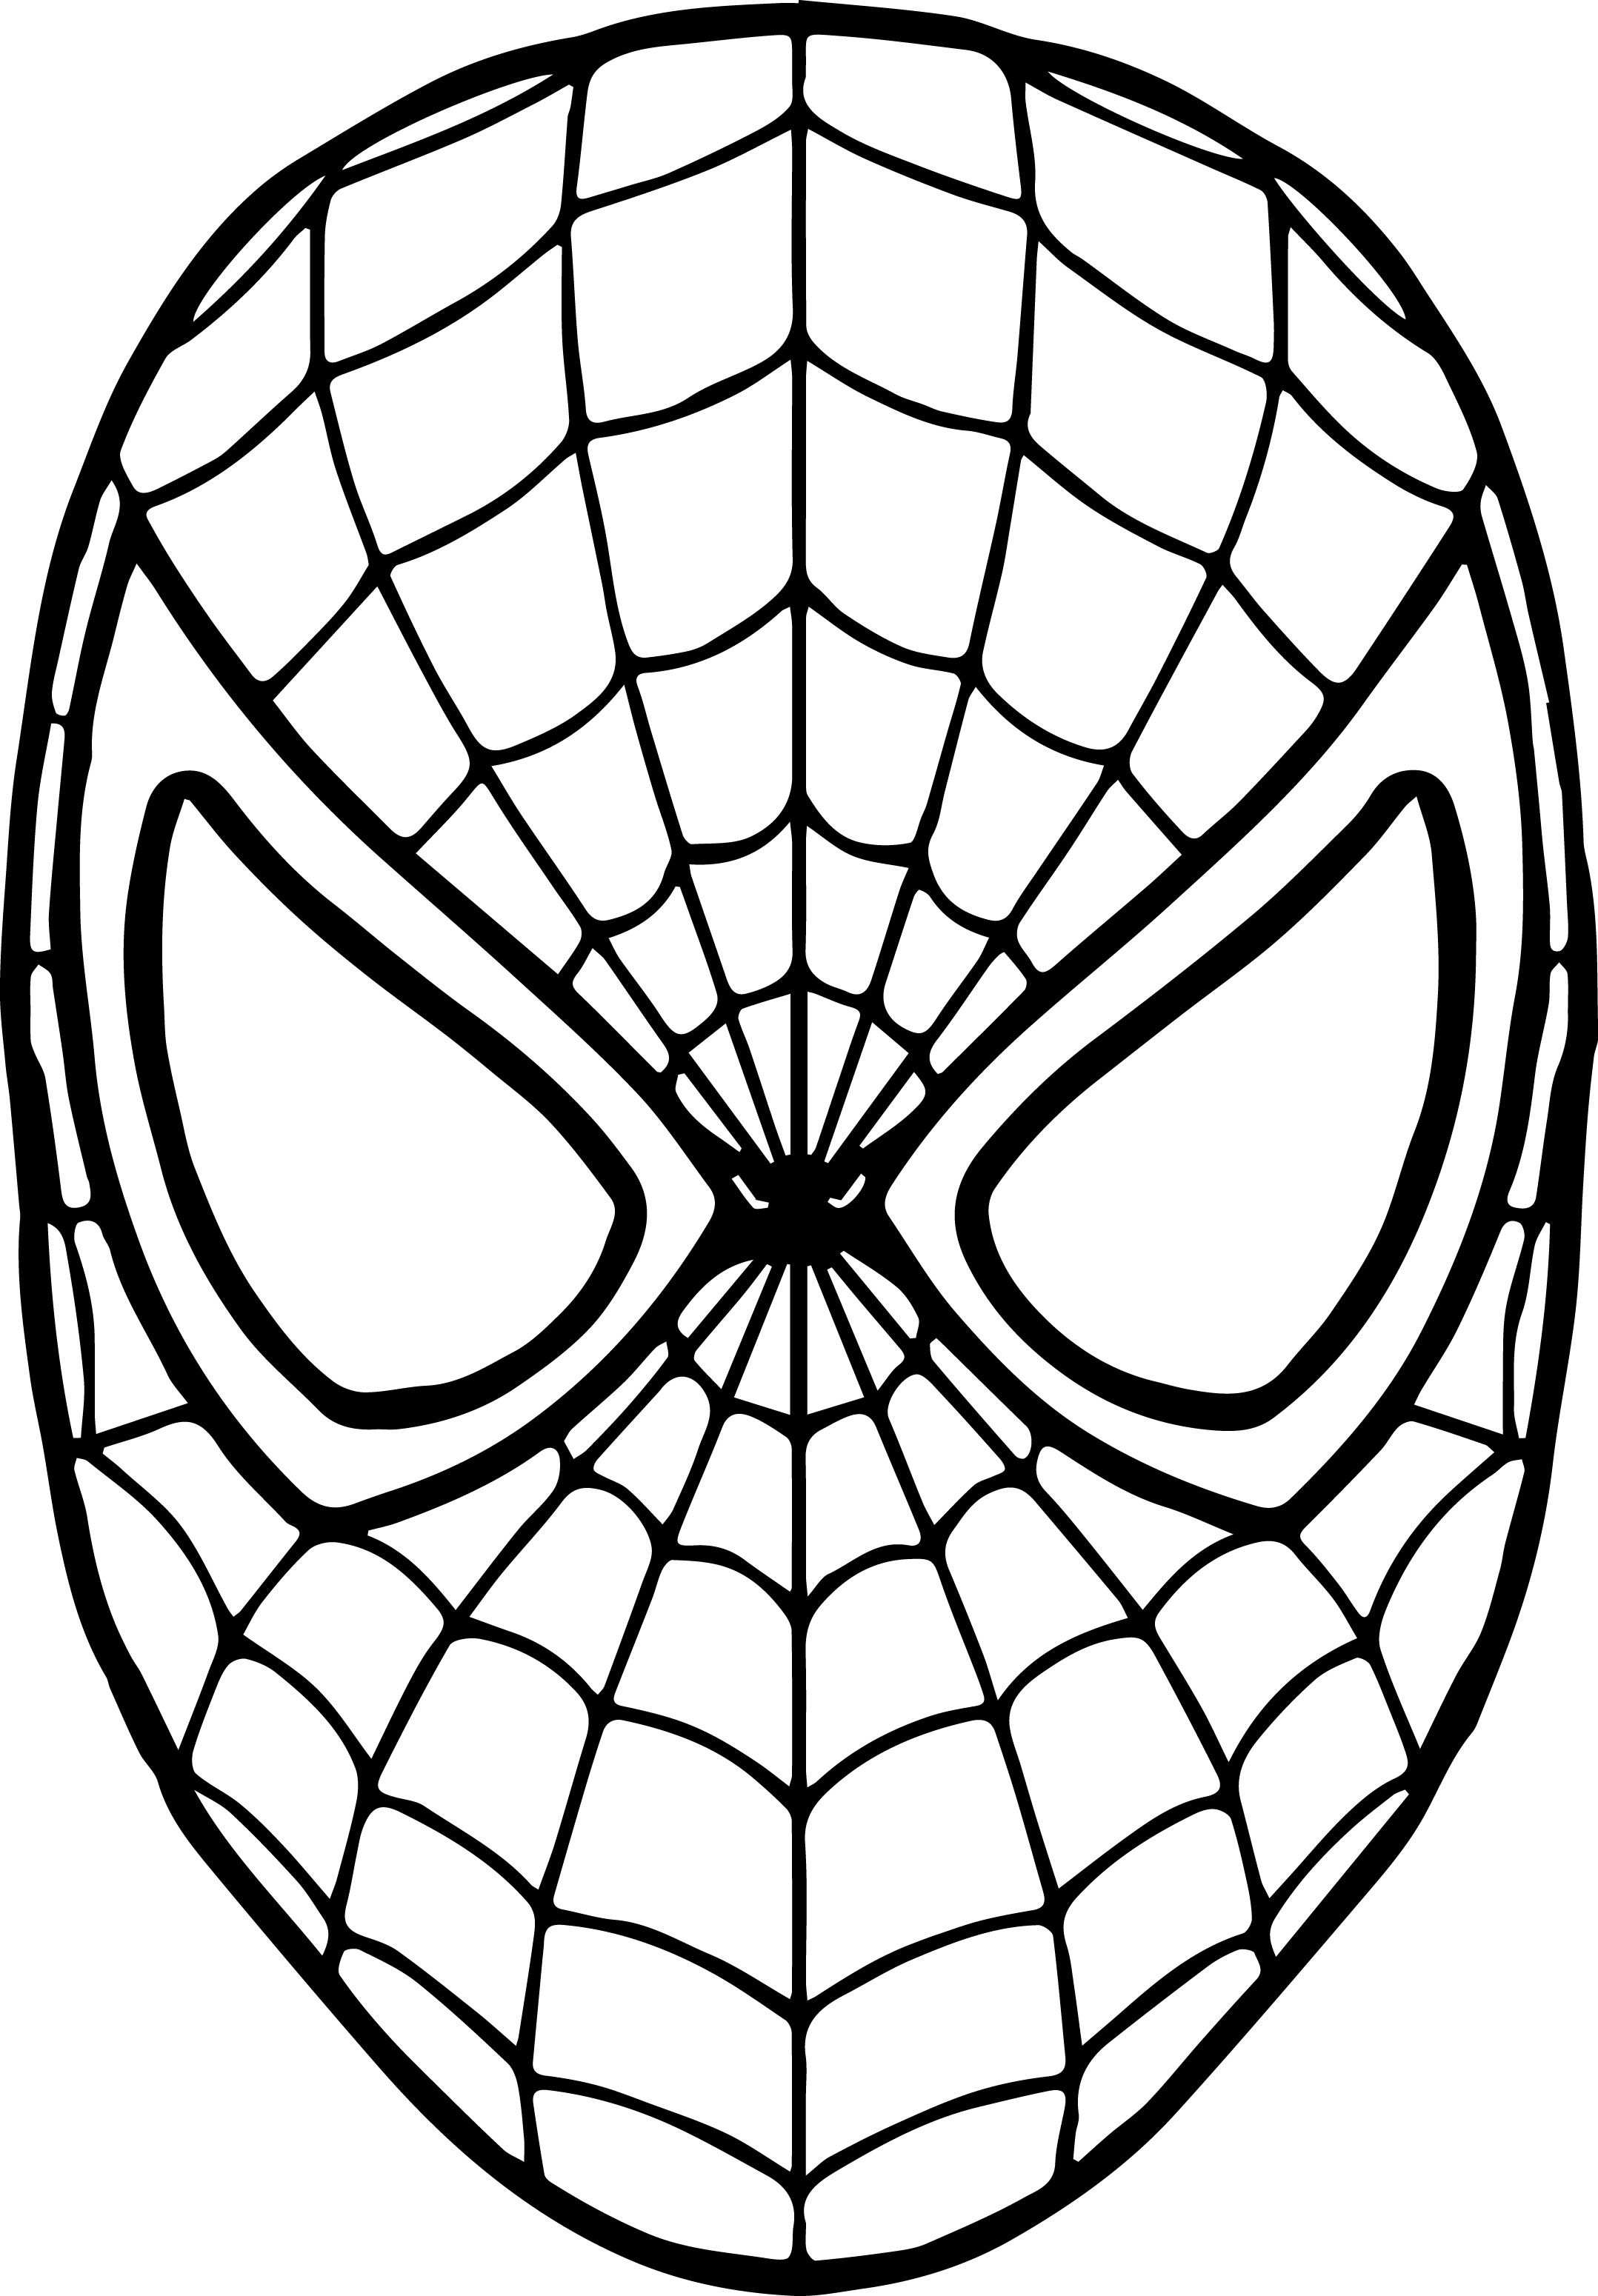 Spiderman Coloring Pages In 2020 Kleurplaten Spiderman Carnaval